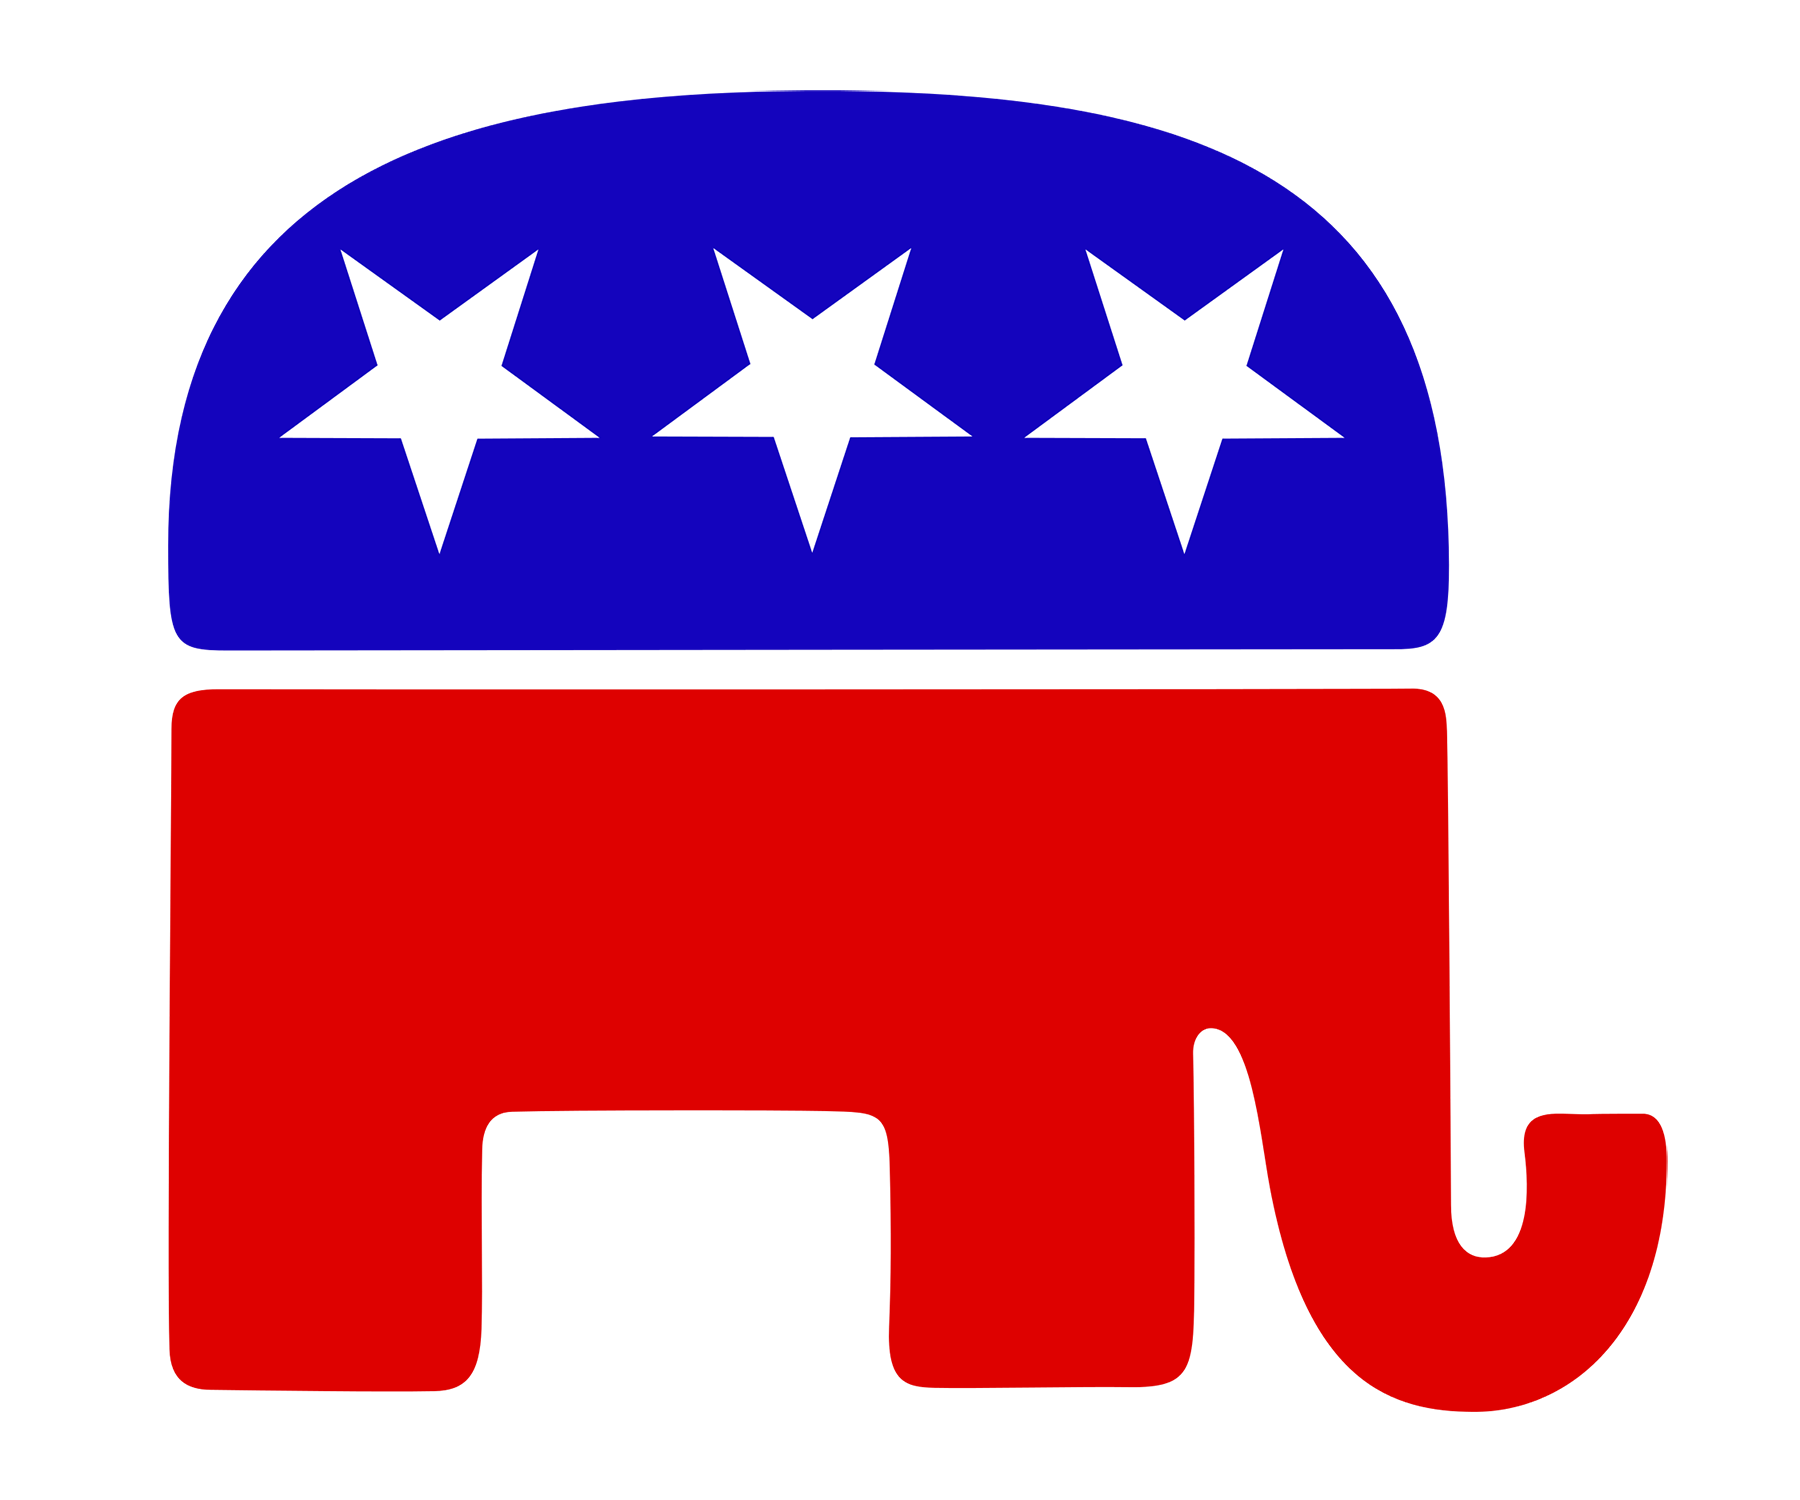 Republican Logo Republican Symbol Meaning History And Evolution